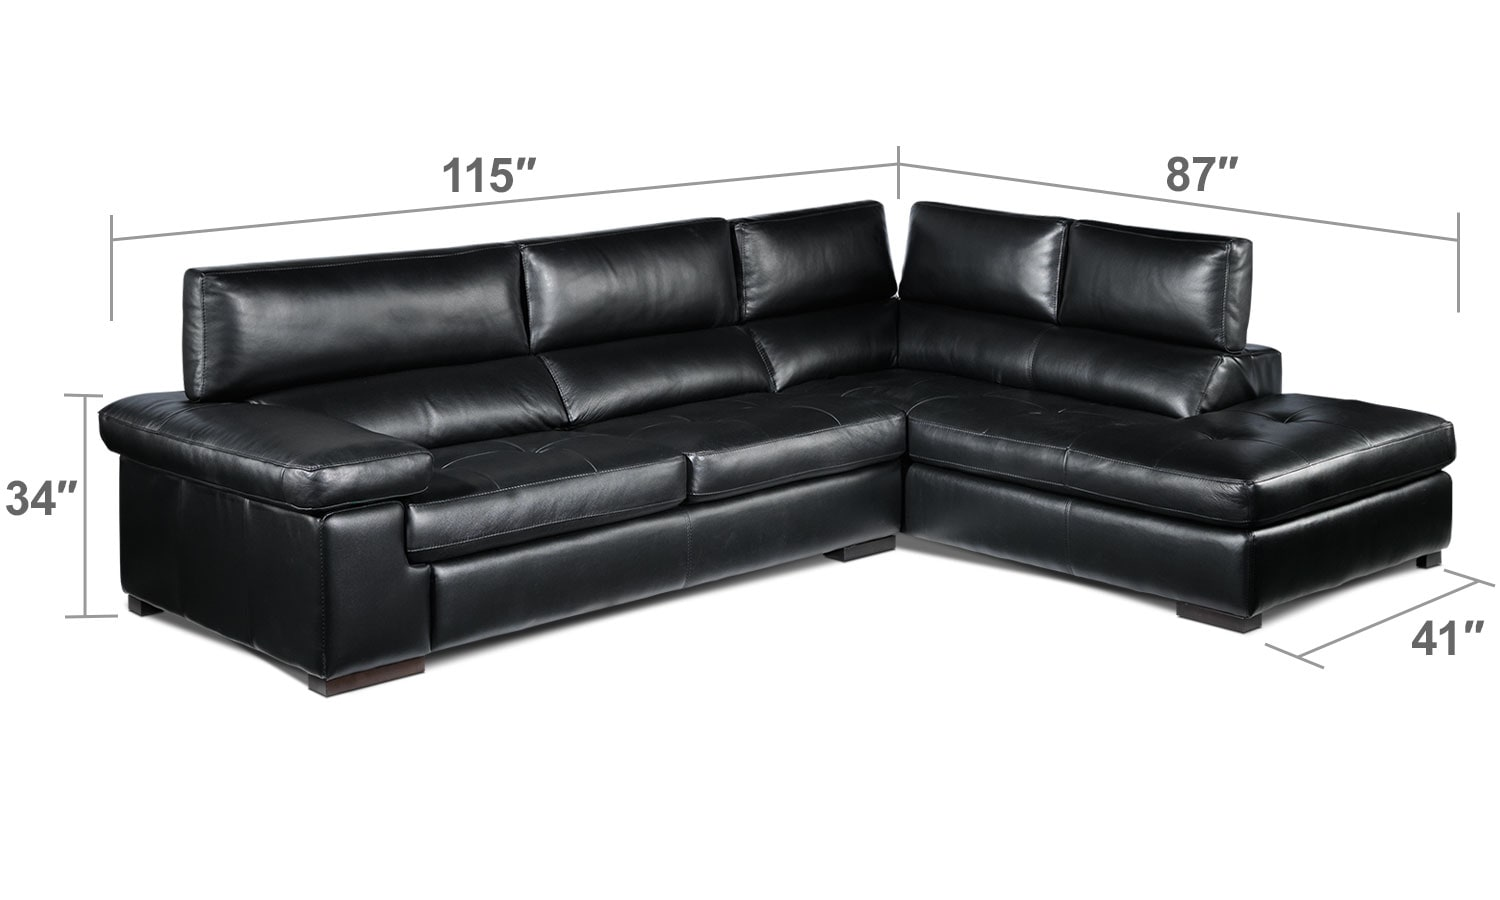 Living Room Furniture - Underwood 2-Piece Right-Facing Sectional - Black